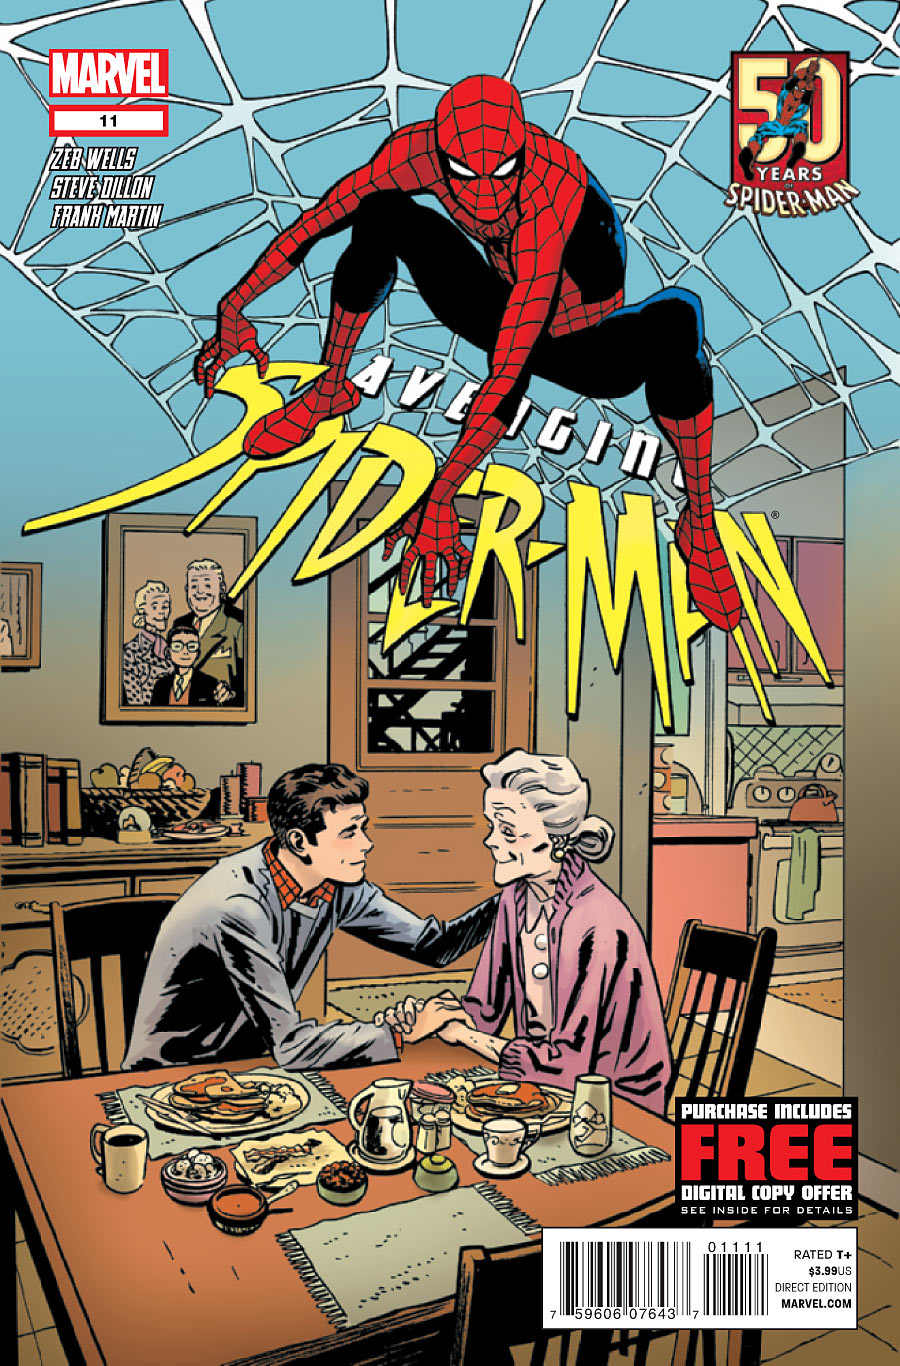 Avenging Spider-Man Issue 11